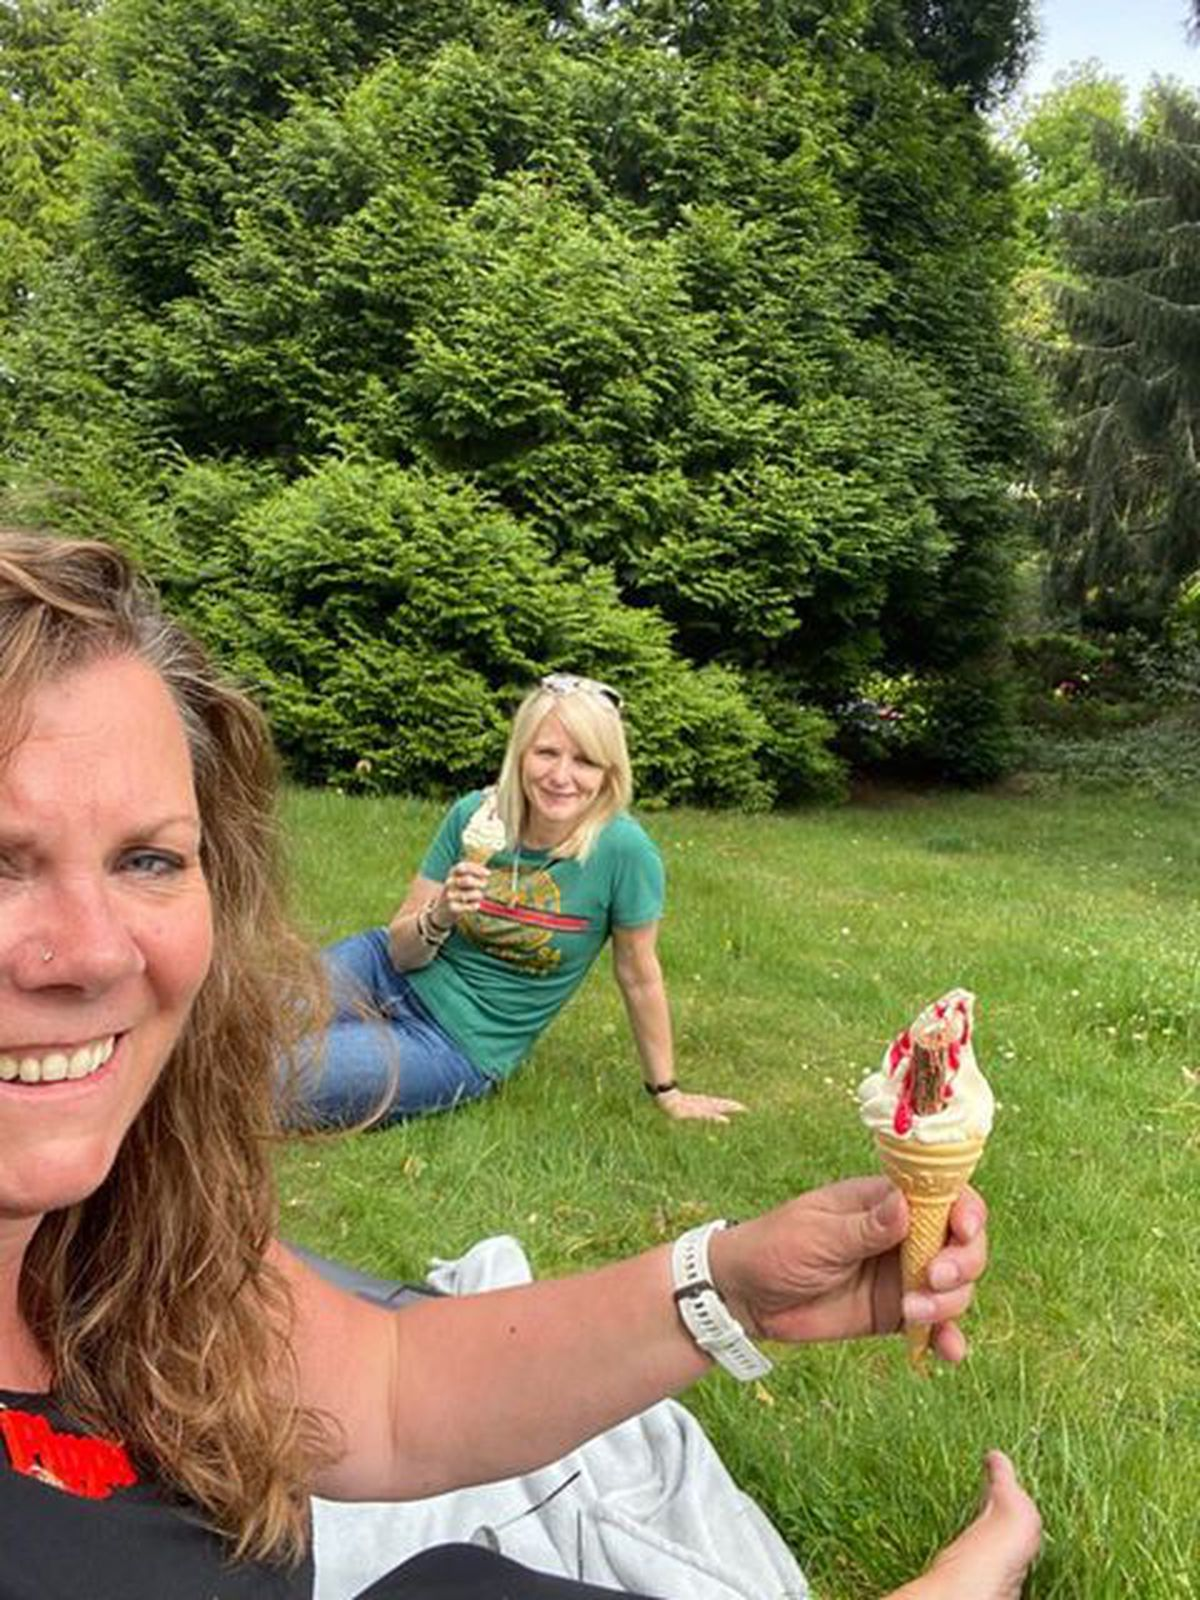 Pippa Laight and Annette Garratt share a socially distant ice cream at Haden Hill Park